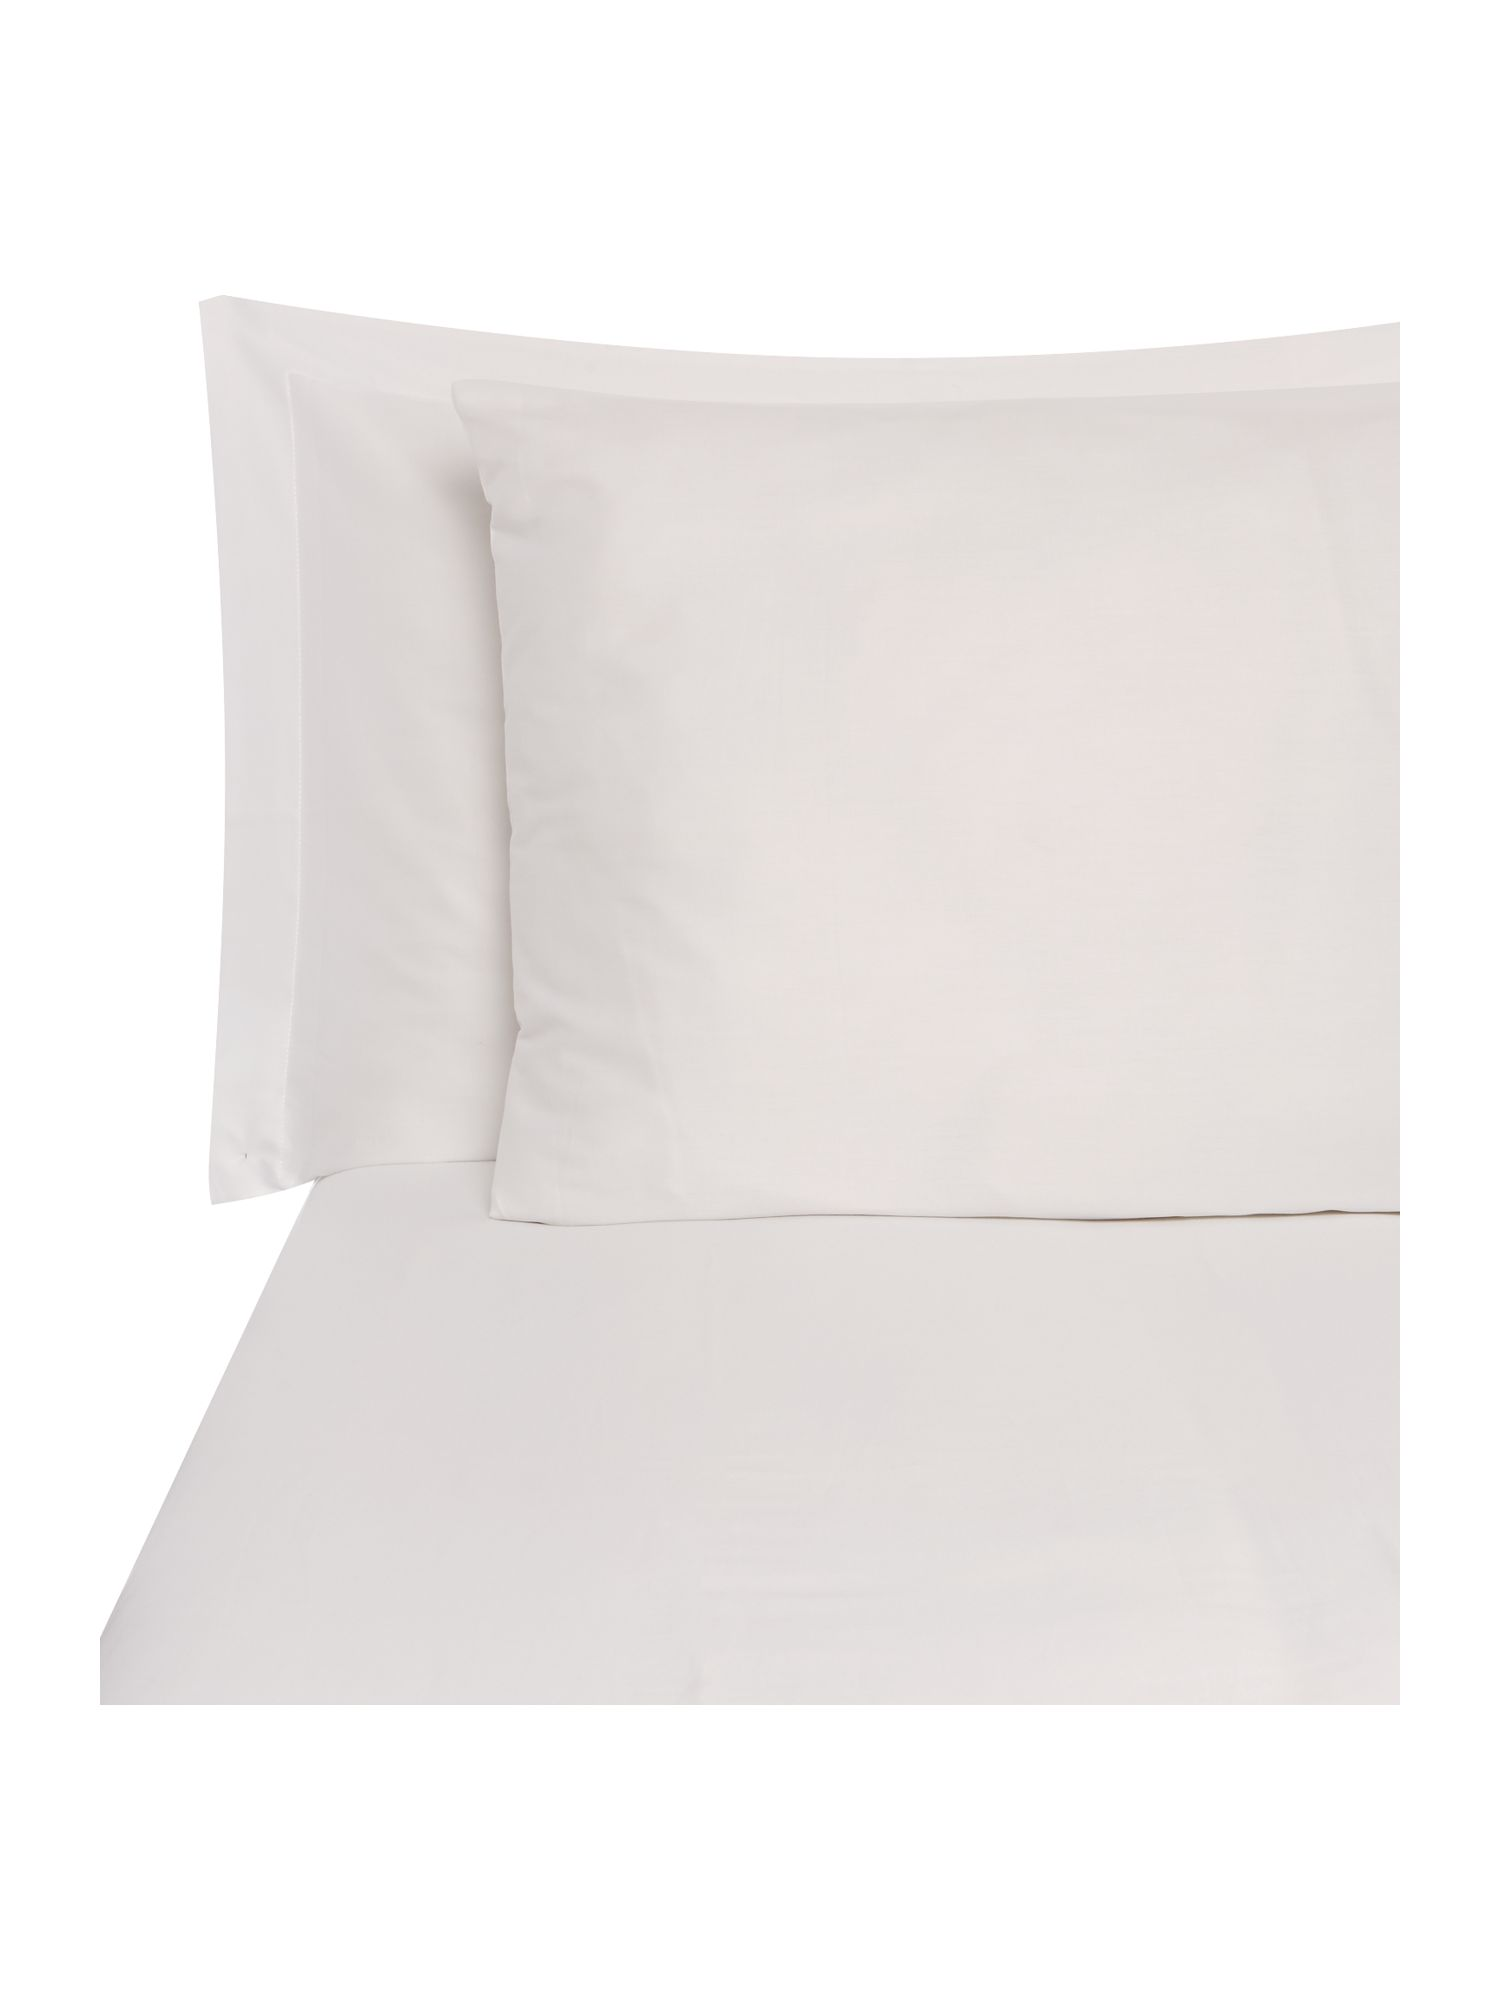 White flat sheet double